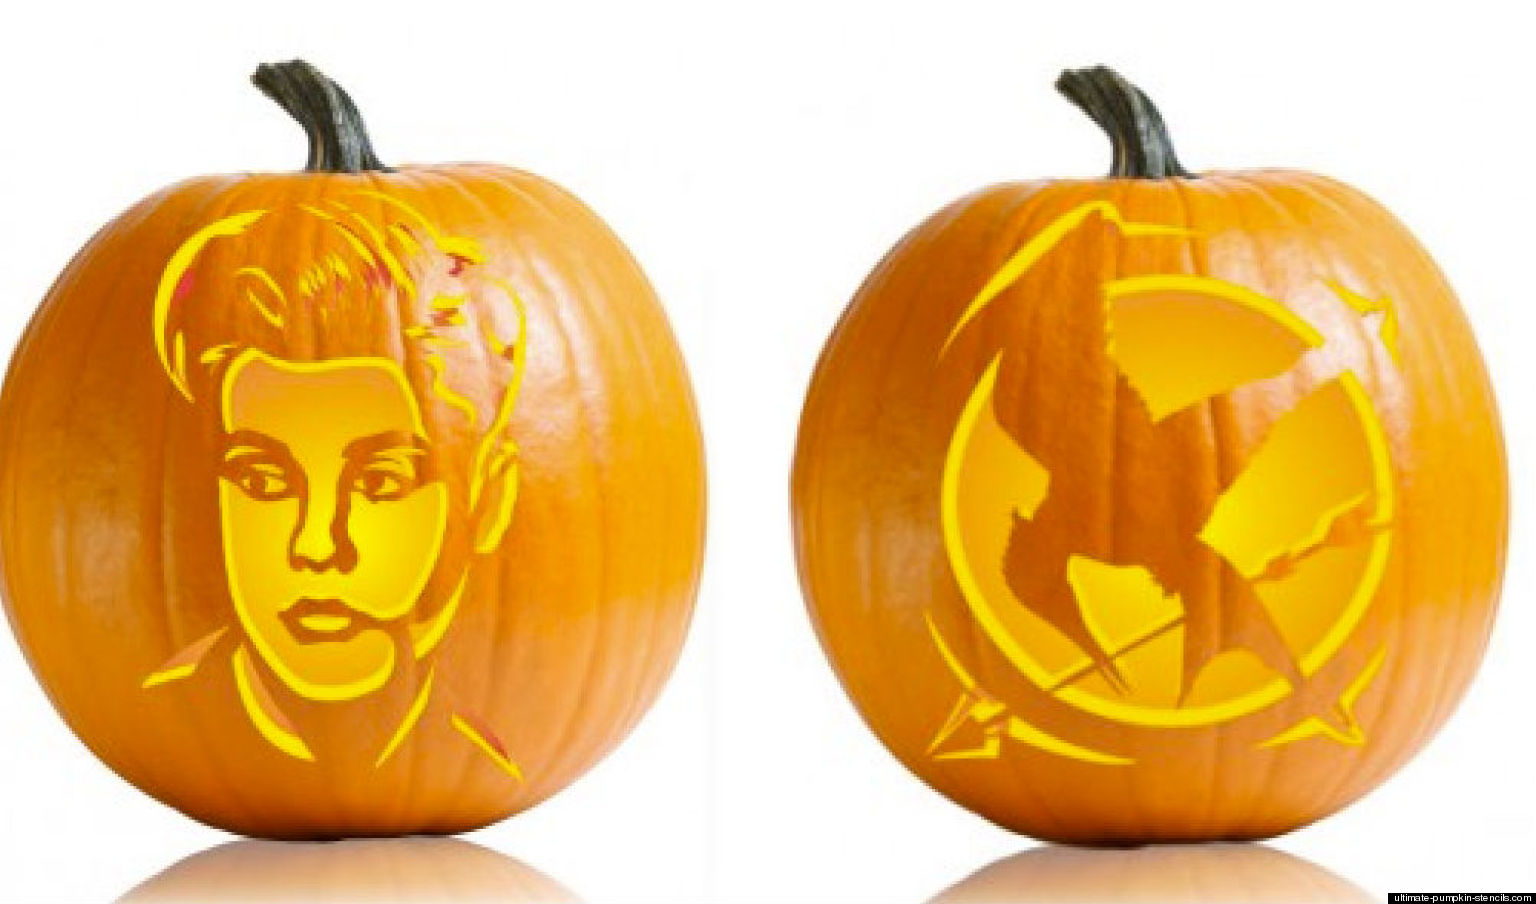 Pumpkin Carving Ideas: 6 Awesome And Unusual Jack-O-Lantern ...